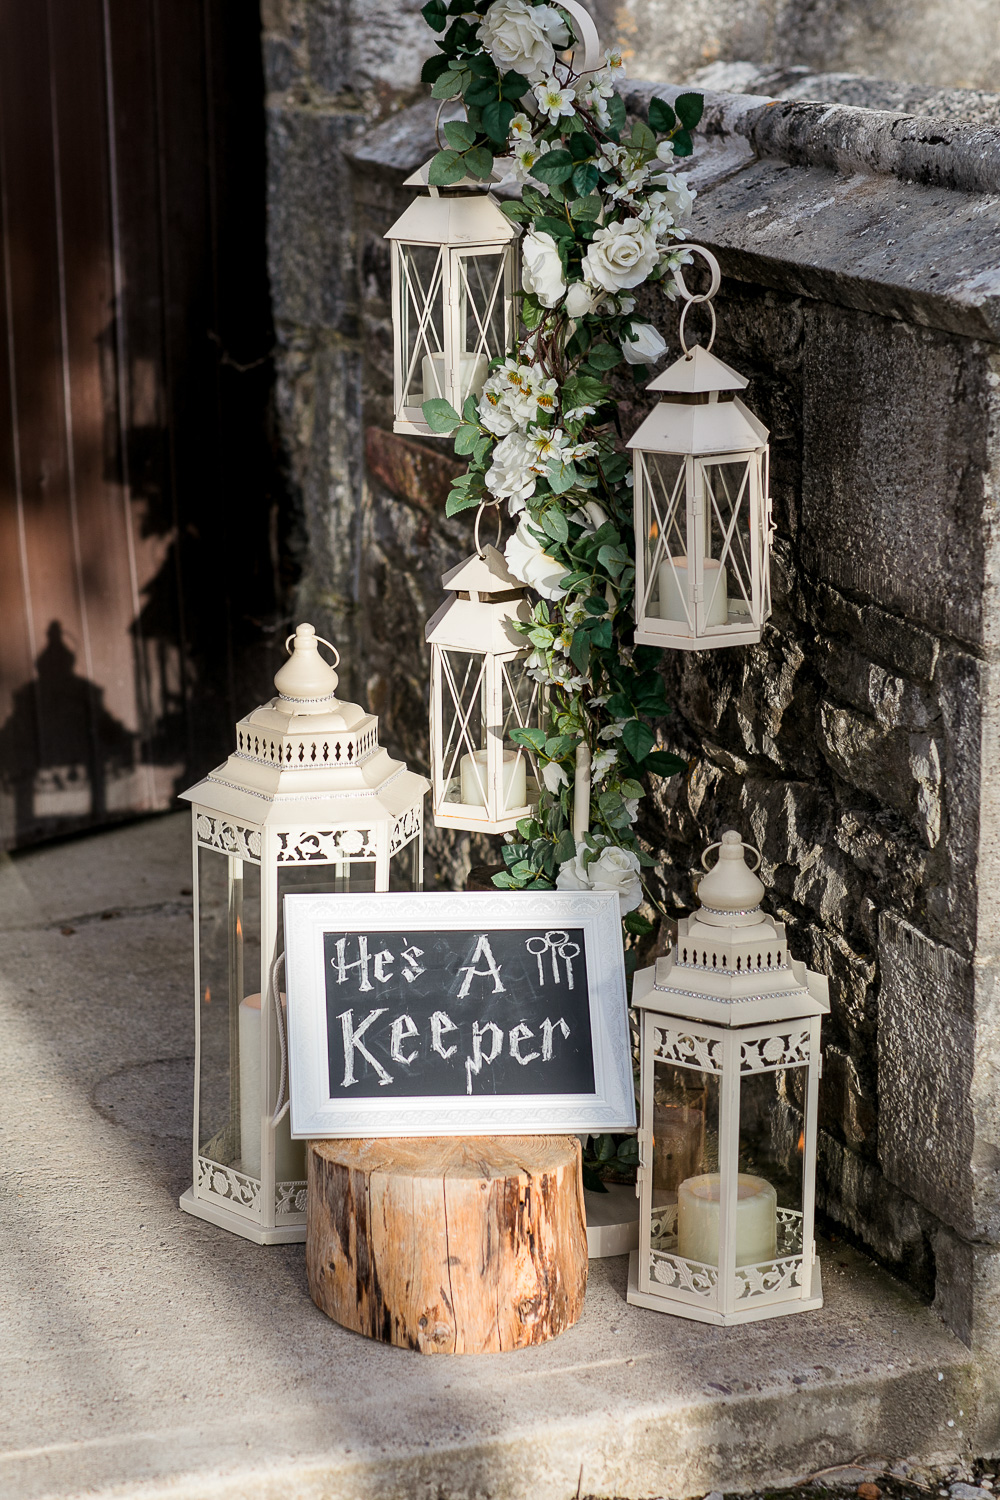 wedding details signs in harry potter font and candle holders on a wooden stand